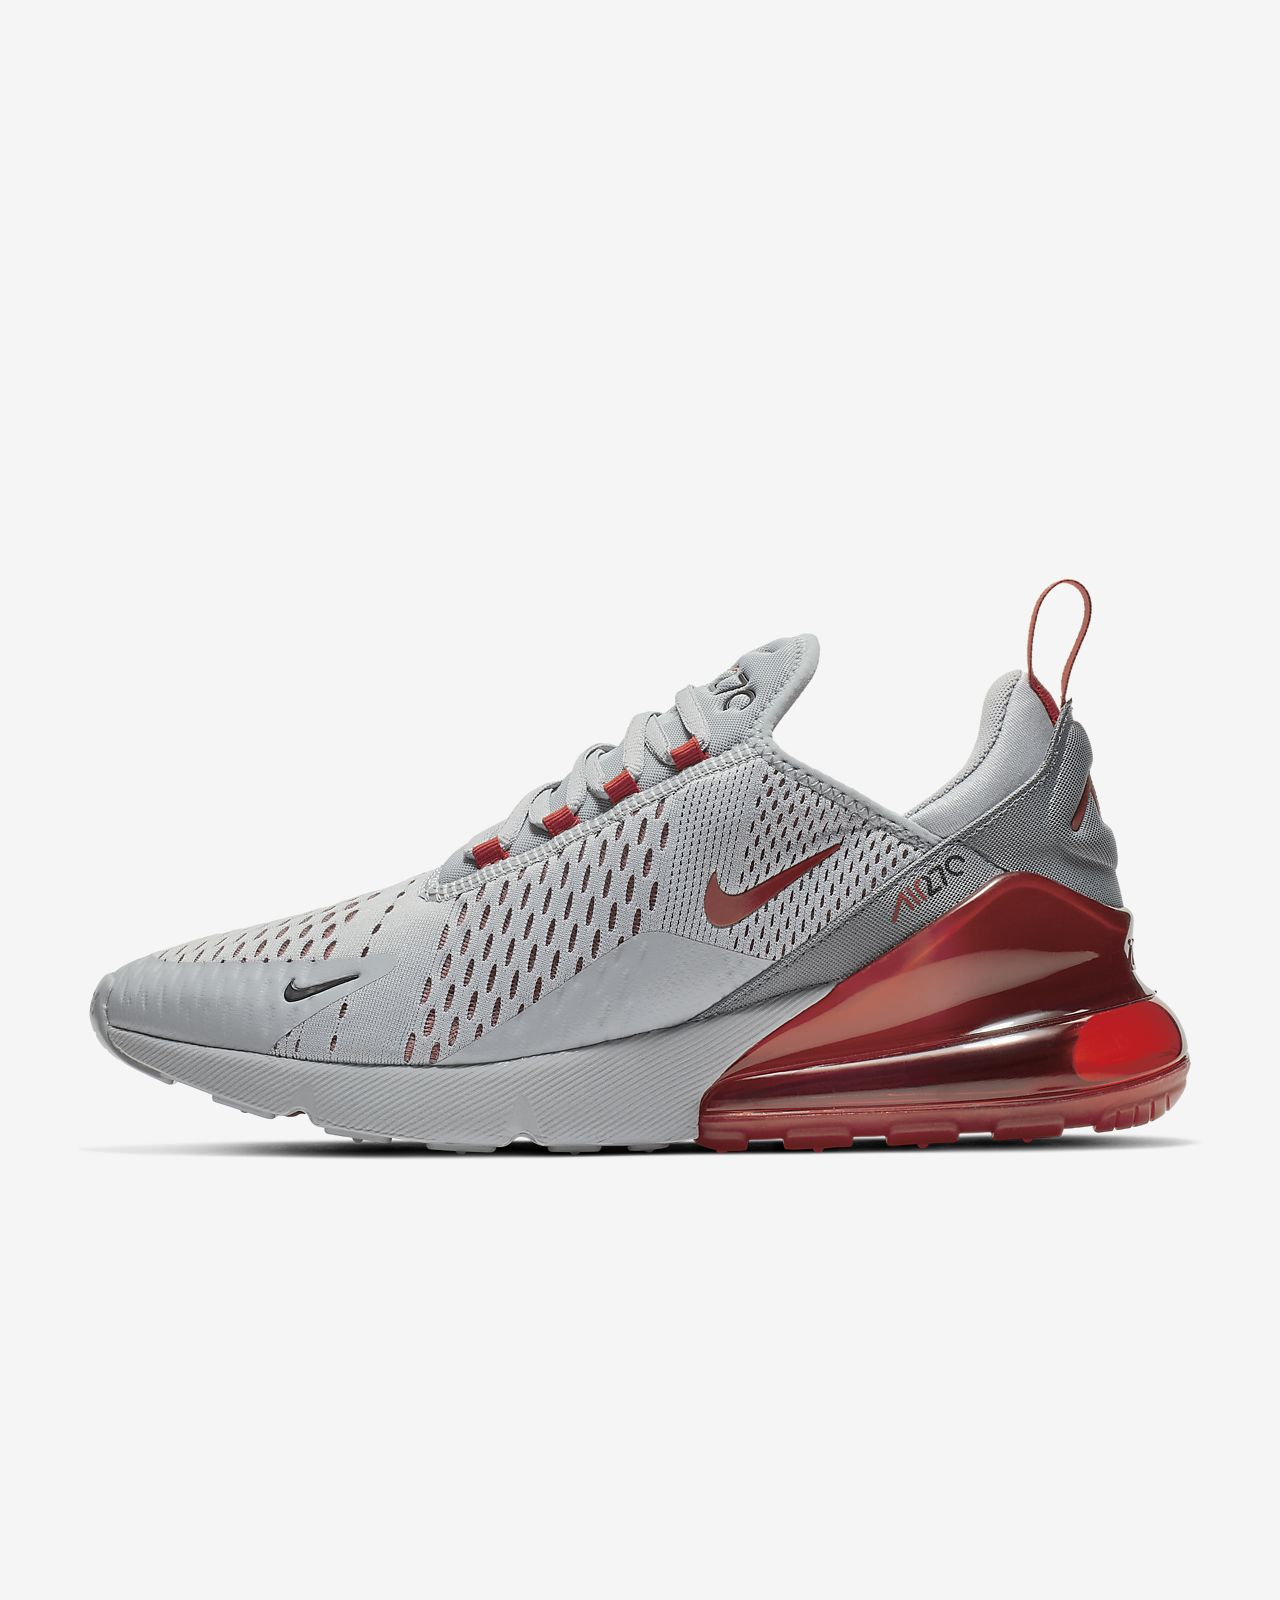 meet 98b7f 365c0 Men s Shoe. Nike Air Max 270